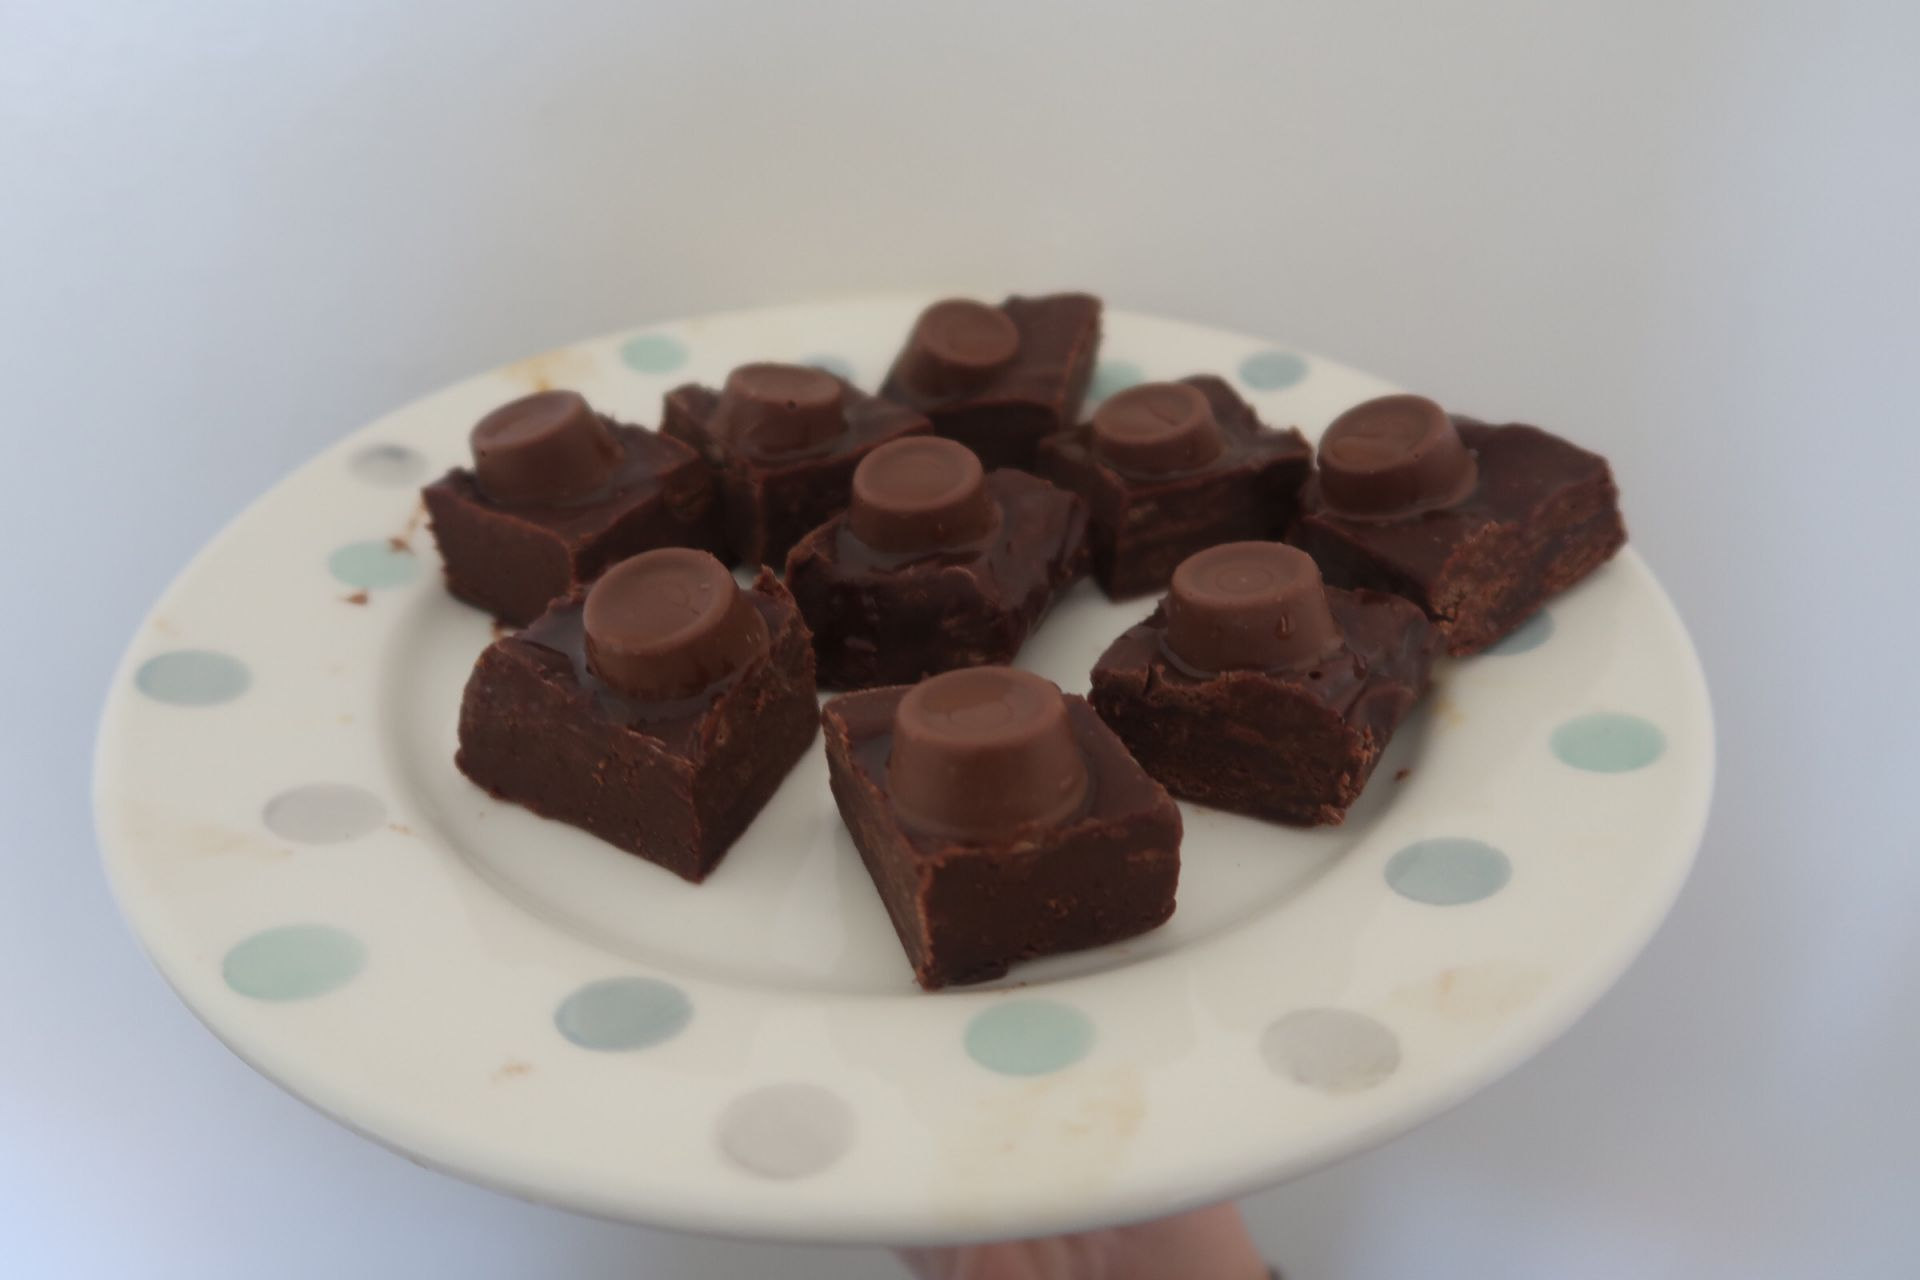 a plate with solo fudge on